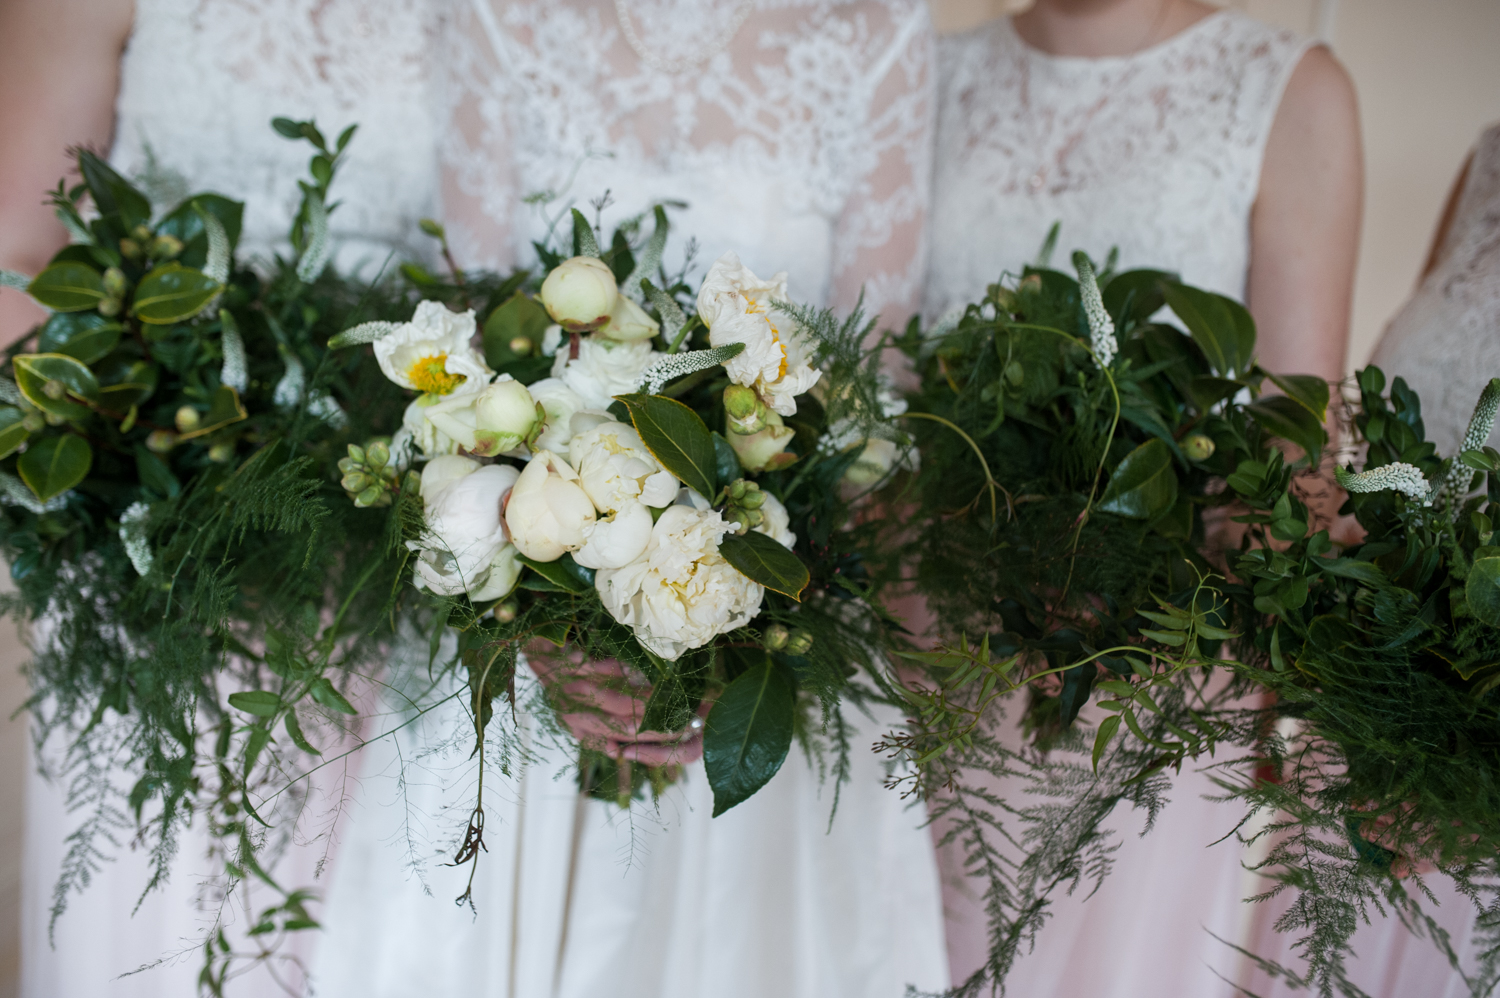 simple_bridal_bridesmaid_bouquets_greenery_white_flowers.jpeg